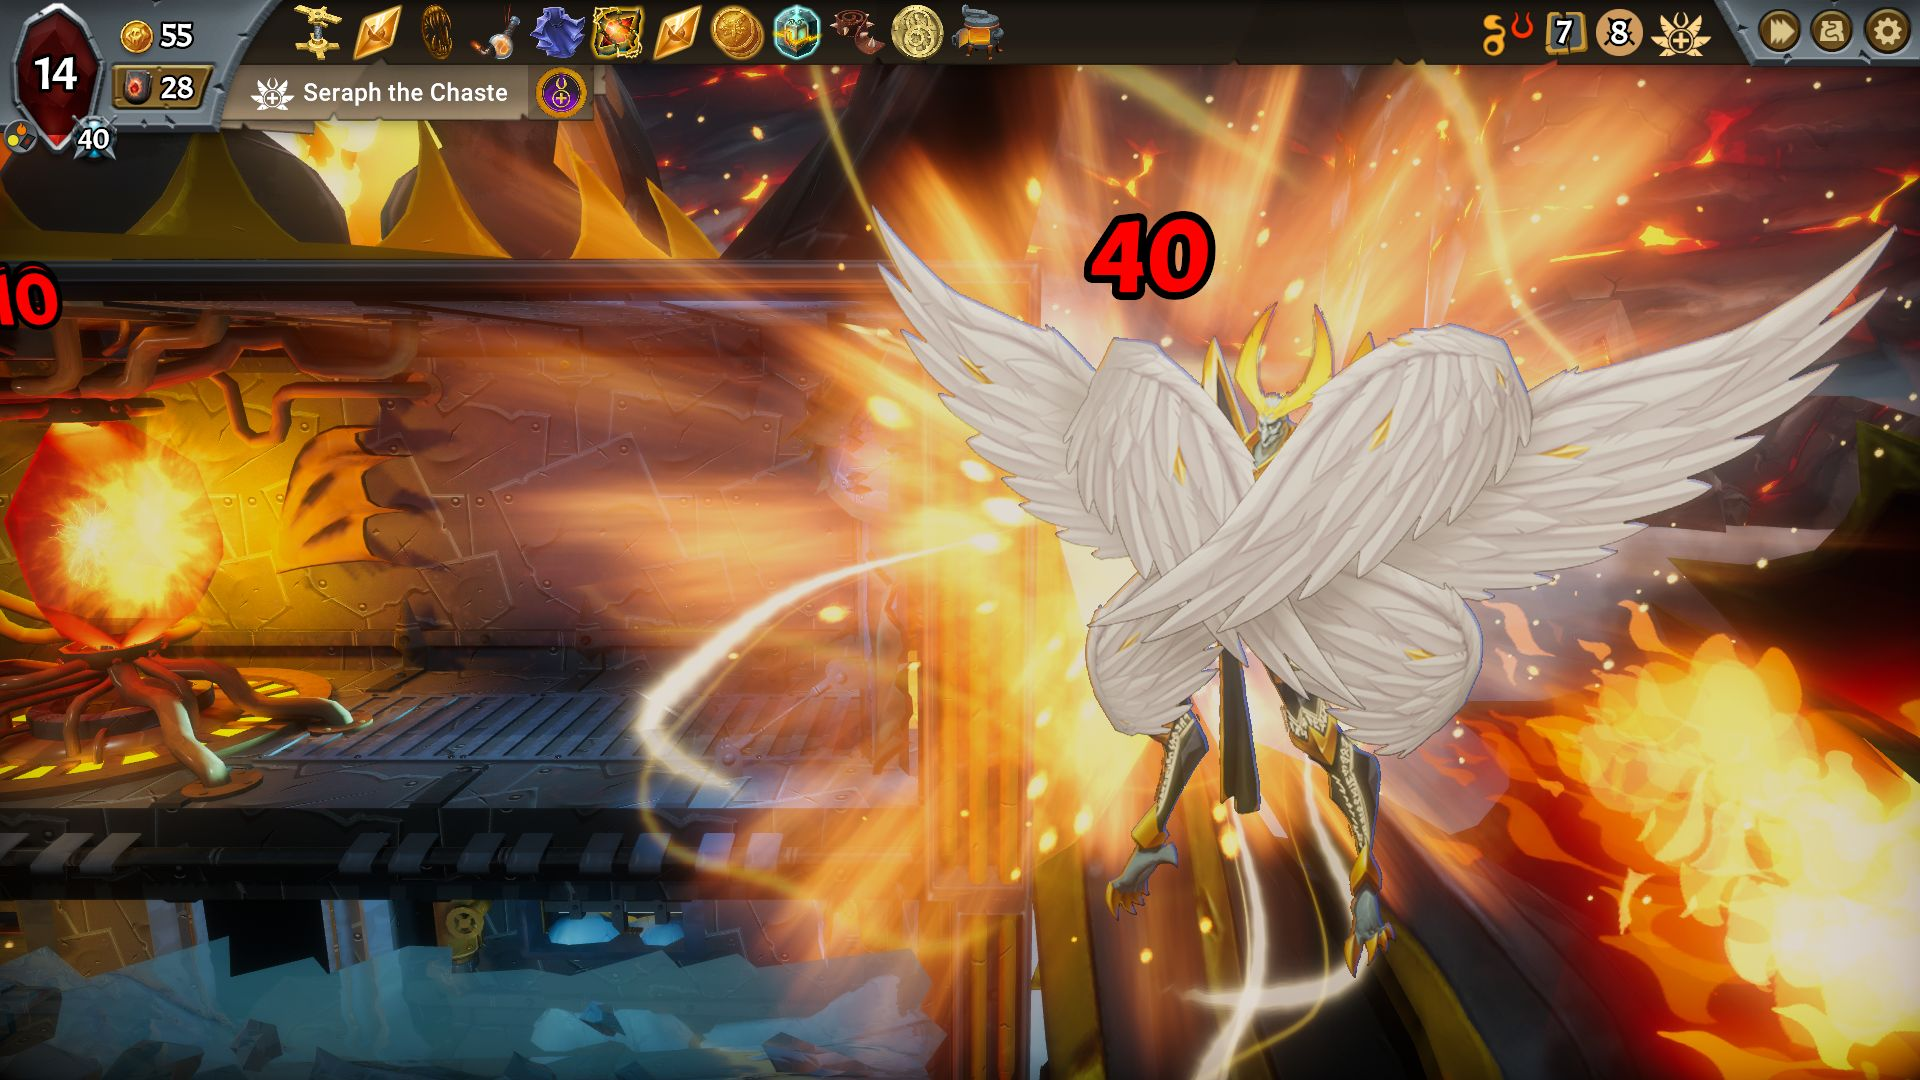 Seraph The Chaste, a big angelic warrior, doing a cool special attack in Monster Train